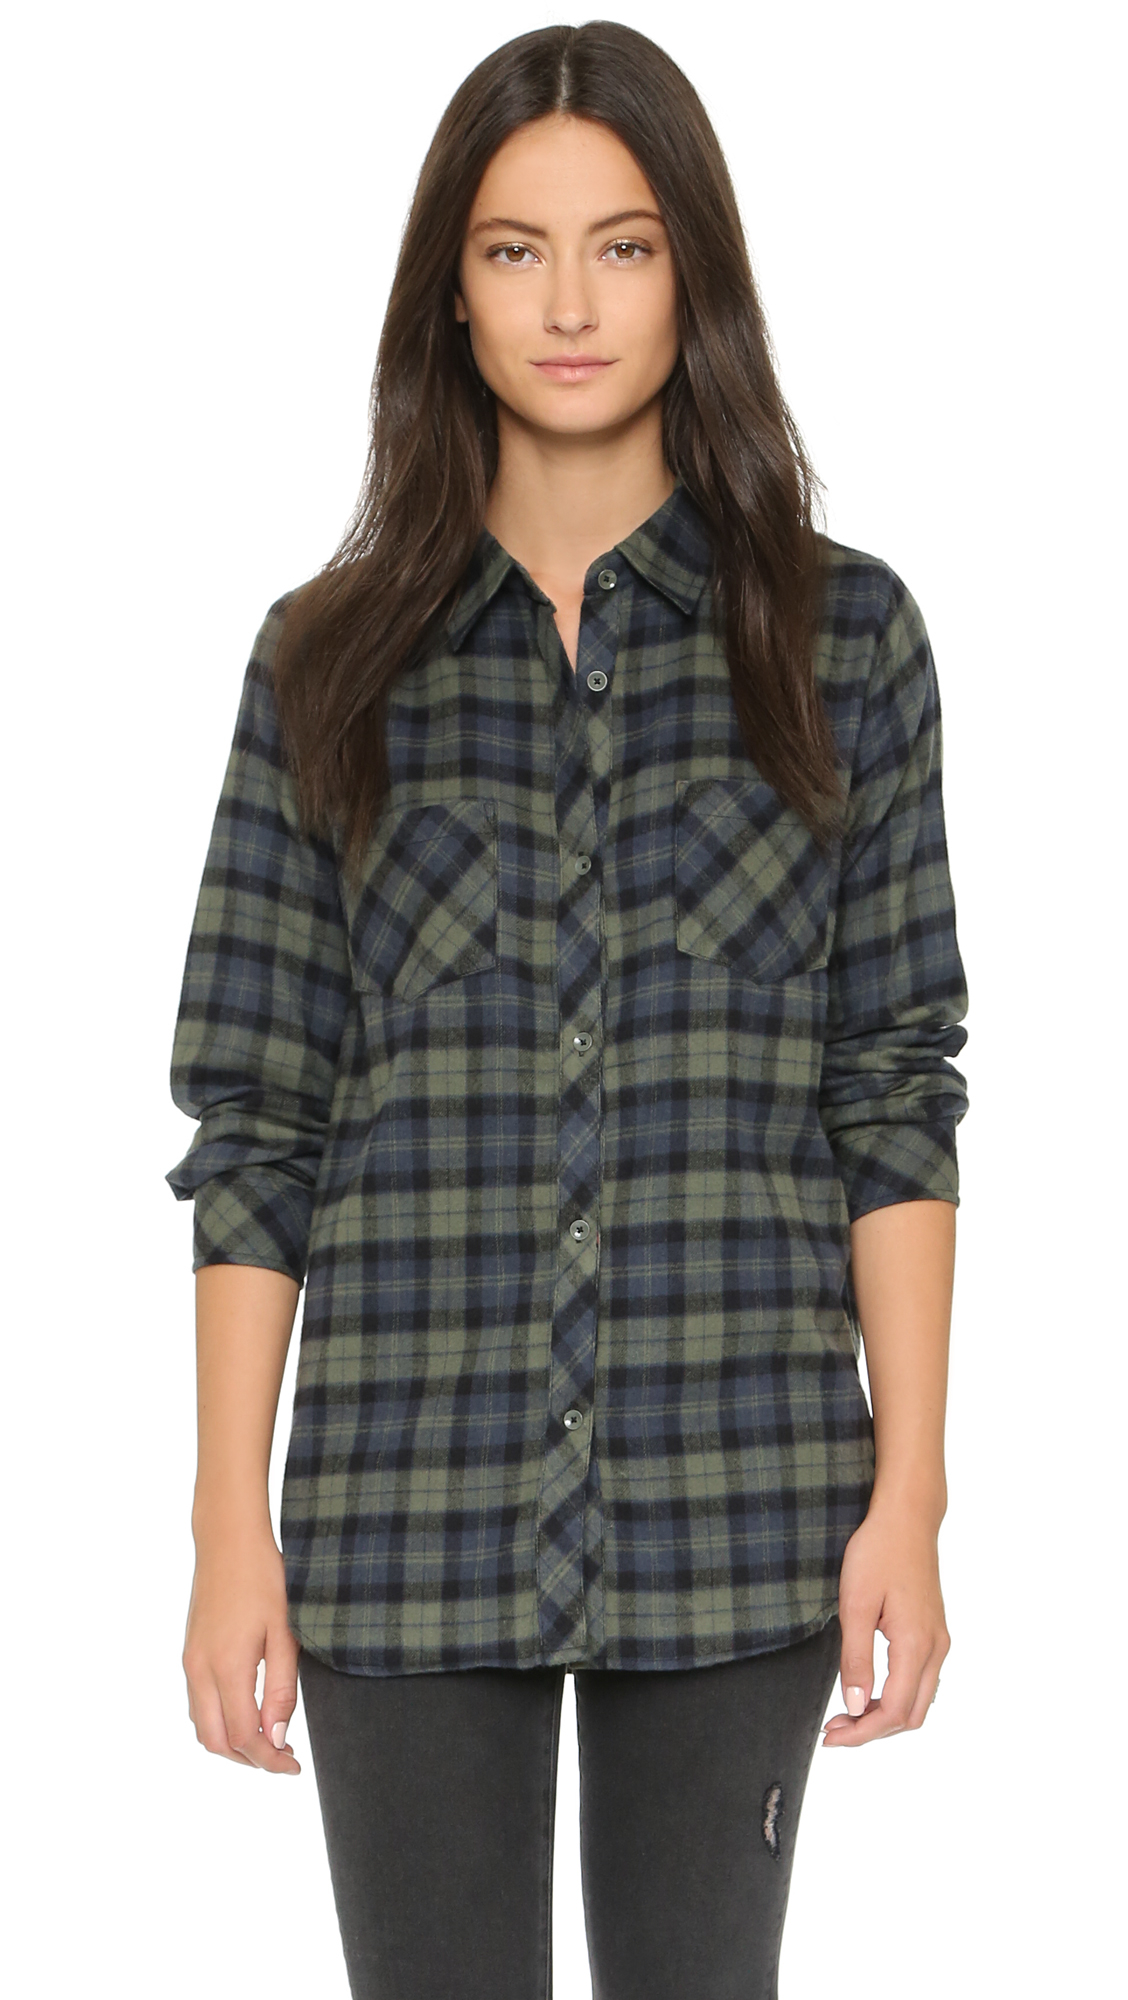 Wrangler Long Sleeve Dark Blue Plaid Button Up Shirt 3WDB. This 3W Wrangler long sleeve plaid shirt is % cotton yarn. Other features of this shirt are under arm gussets and vent holes, button down collar, two-button front patch pockets with flaps, and straight back shopnow-jl6vb8f5.ga: Wrangler.